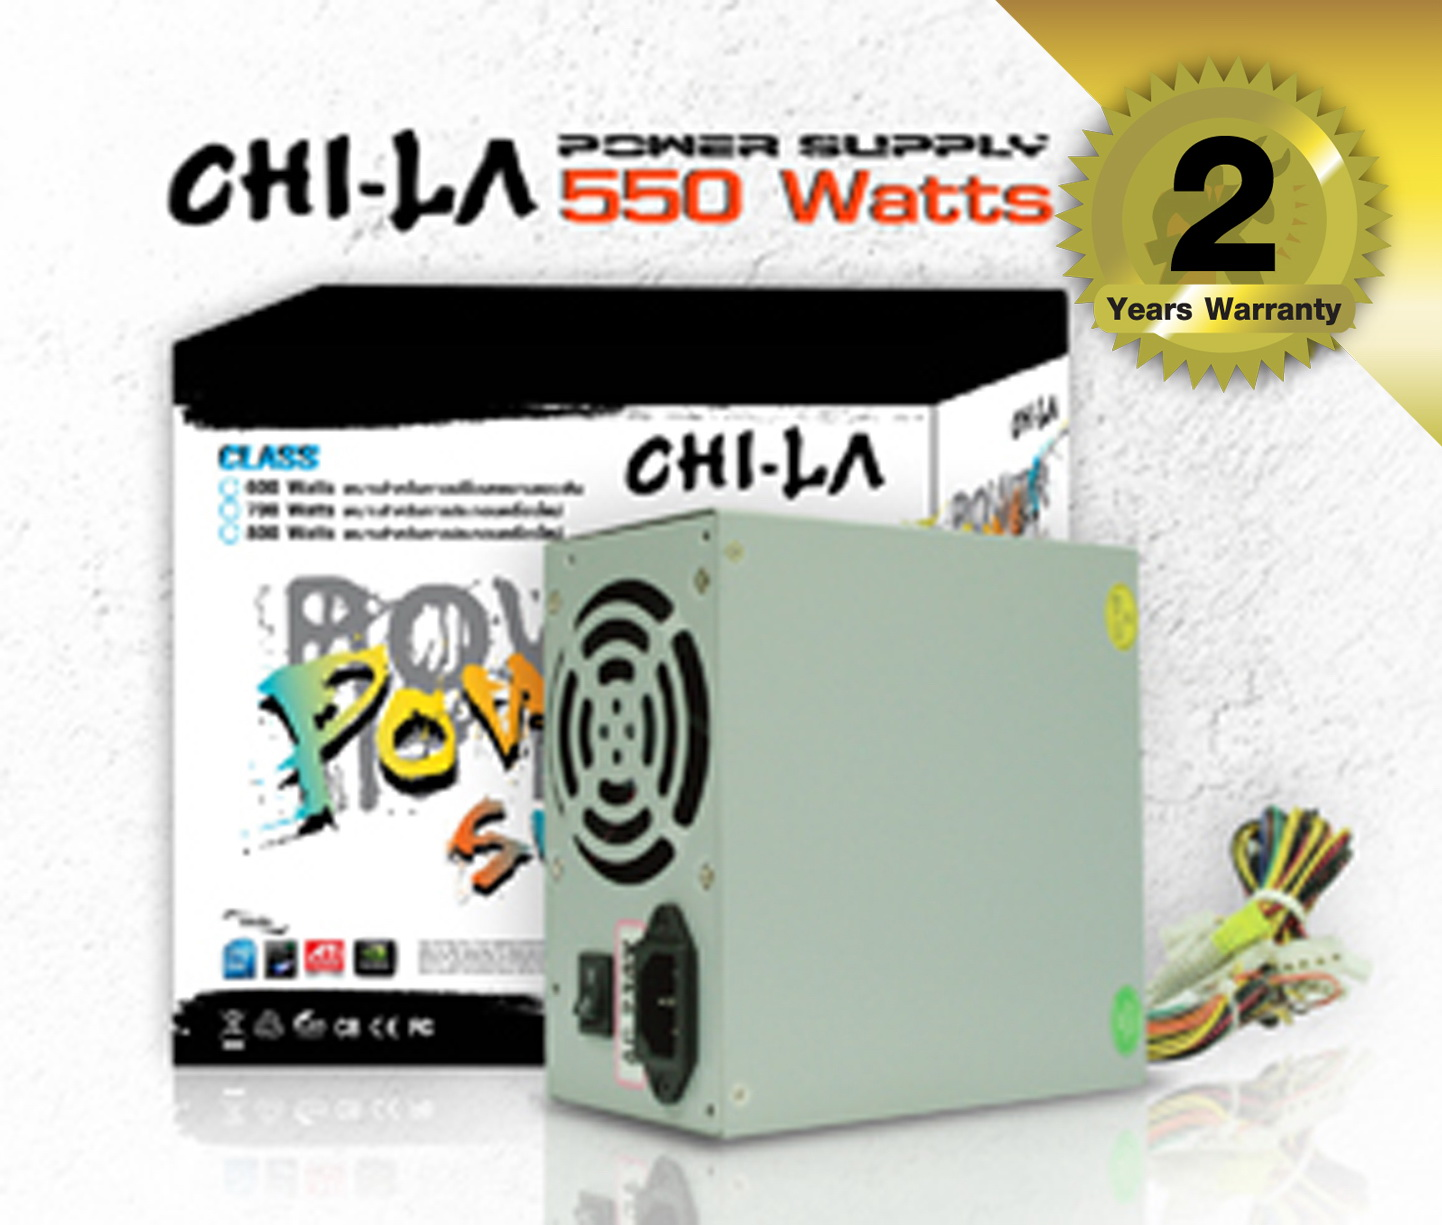 Power Supply CHI-LA 550W.